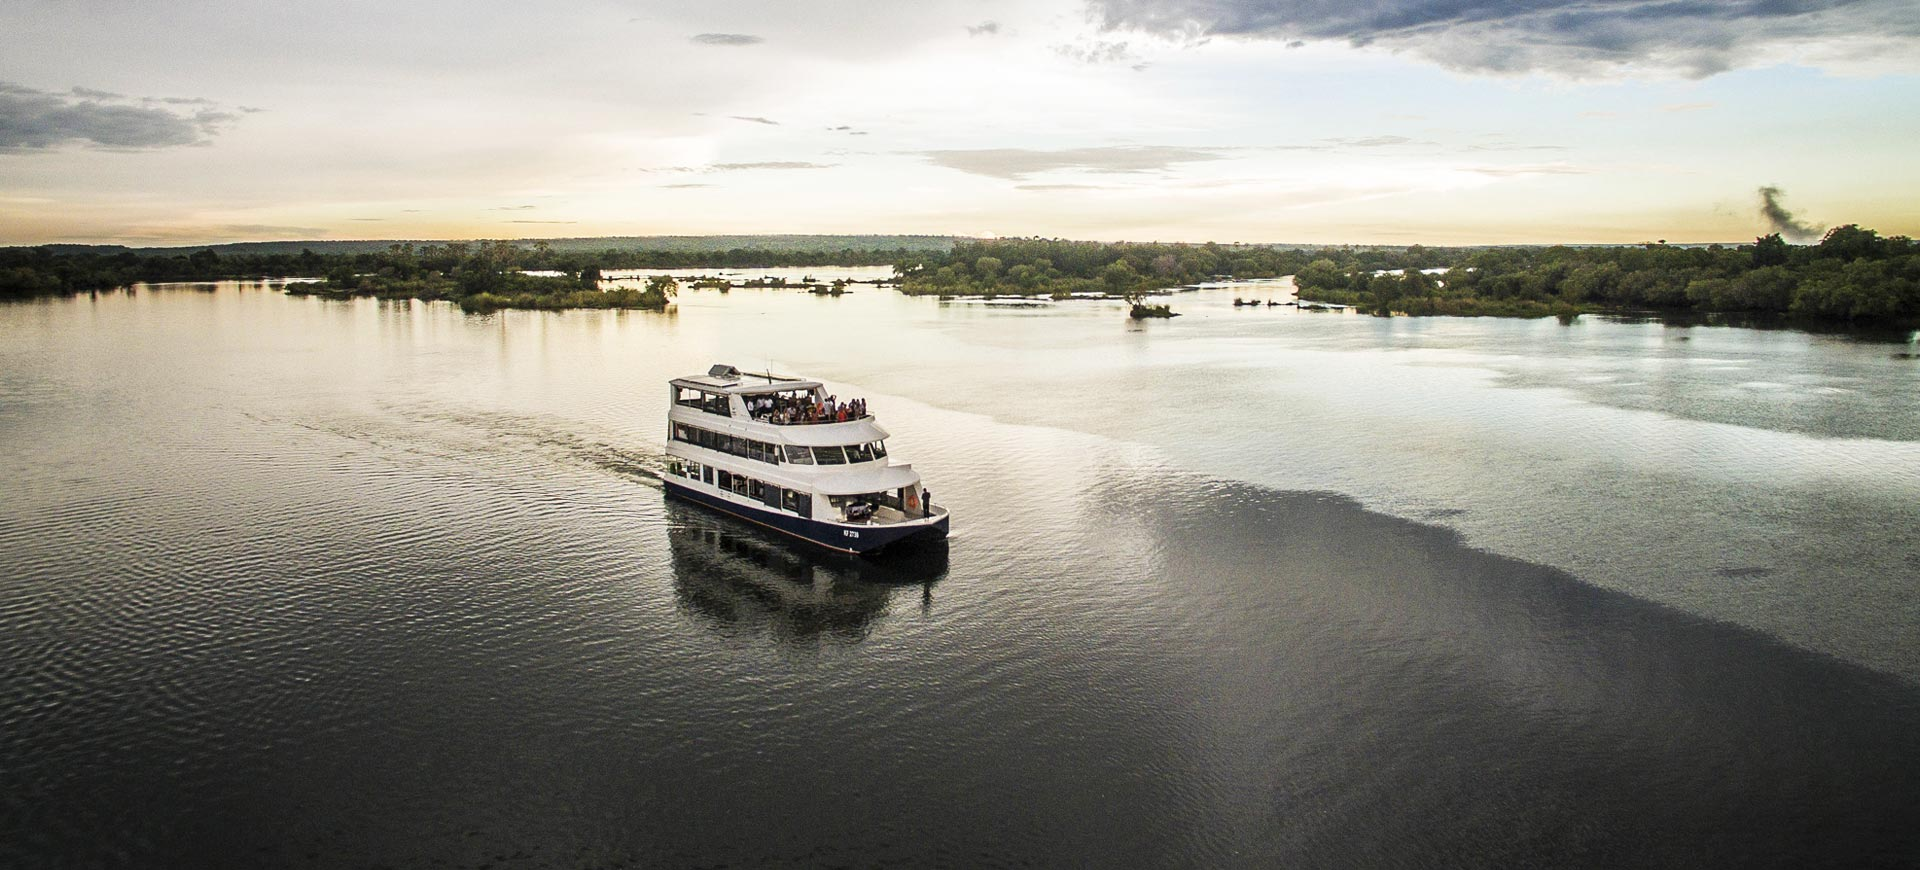 Zambezi River Conference Sunset Cruise Victoria Falls